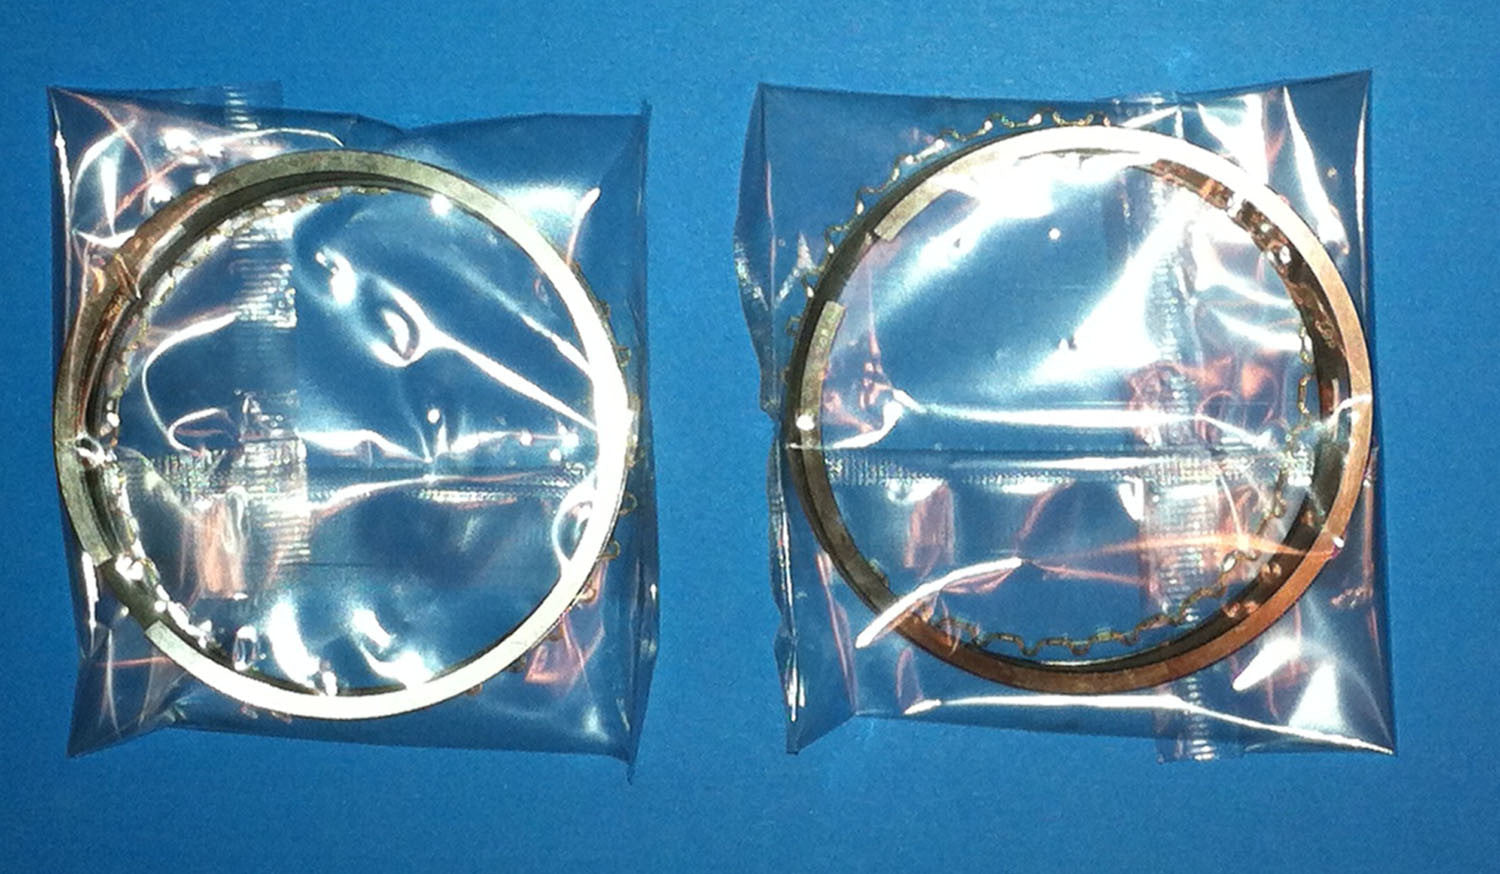 Yamaha TX500 Piston Rings Set x 2 1973 1974 371-11610-03 Motorcycle